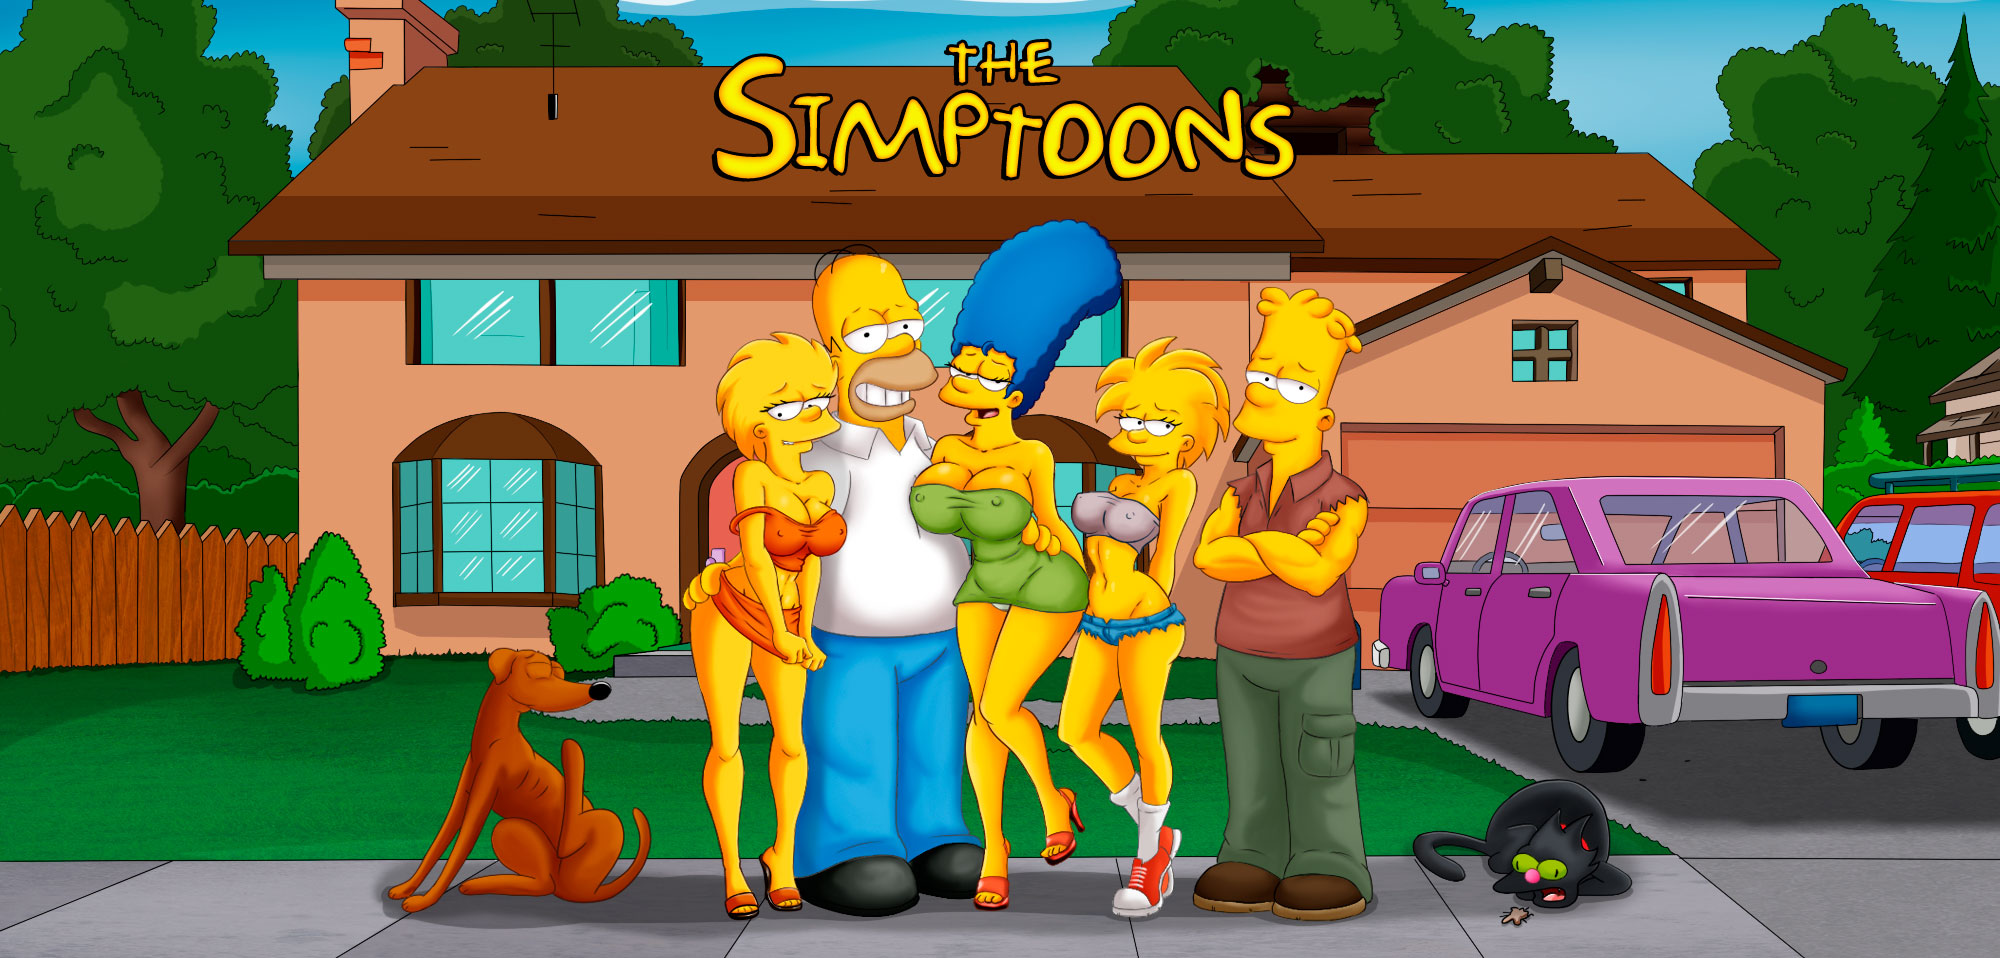 The Simptoons - header